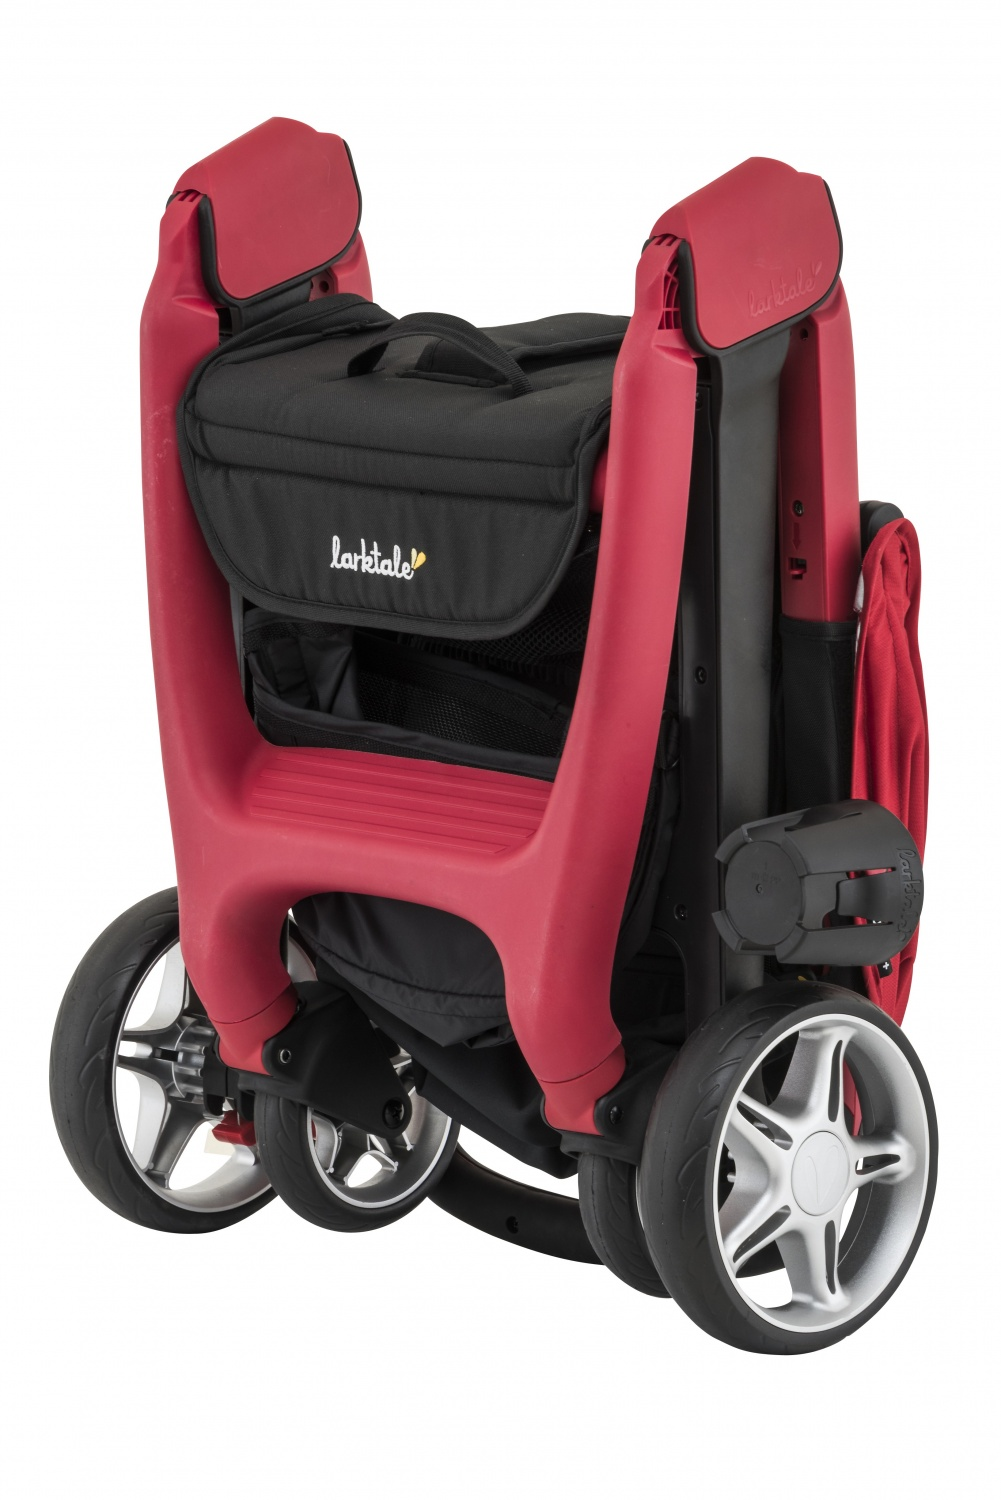 Коляска Larktale Chit Chat Stroller . Фото N9